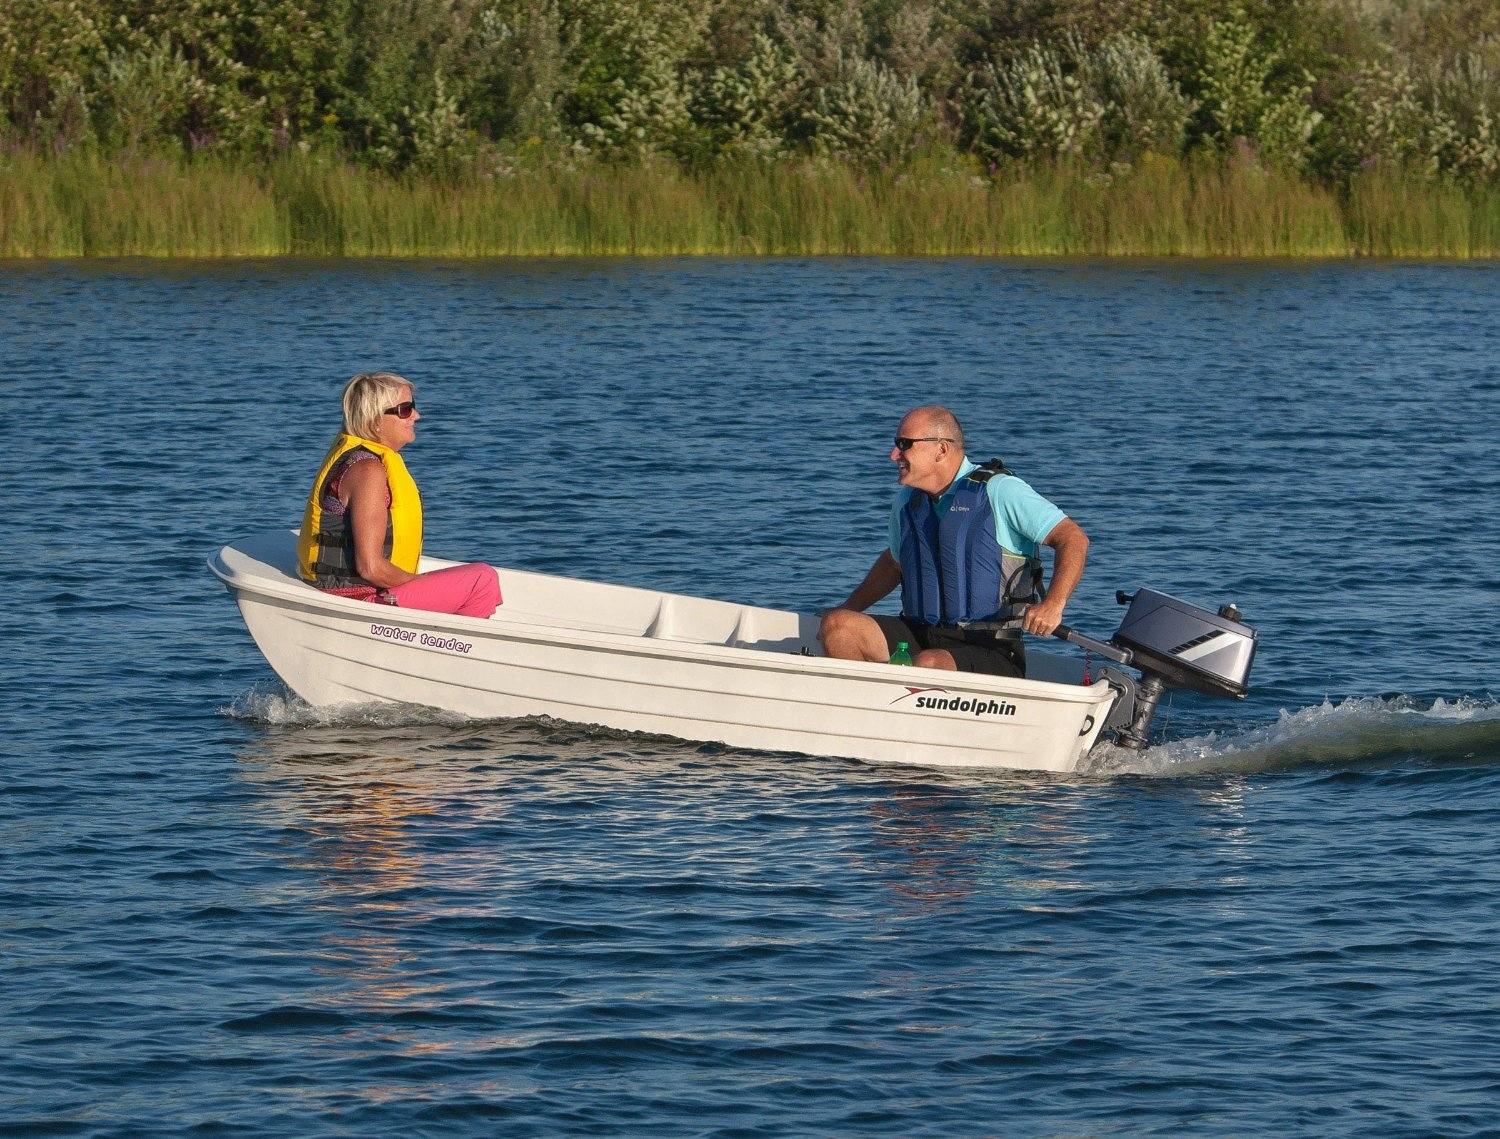 Motorboats Archives - Boatmodo   The Best Gifts for Boaters